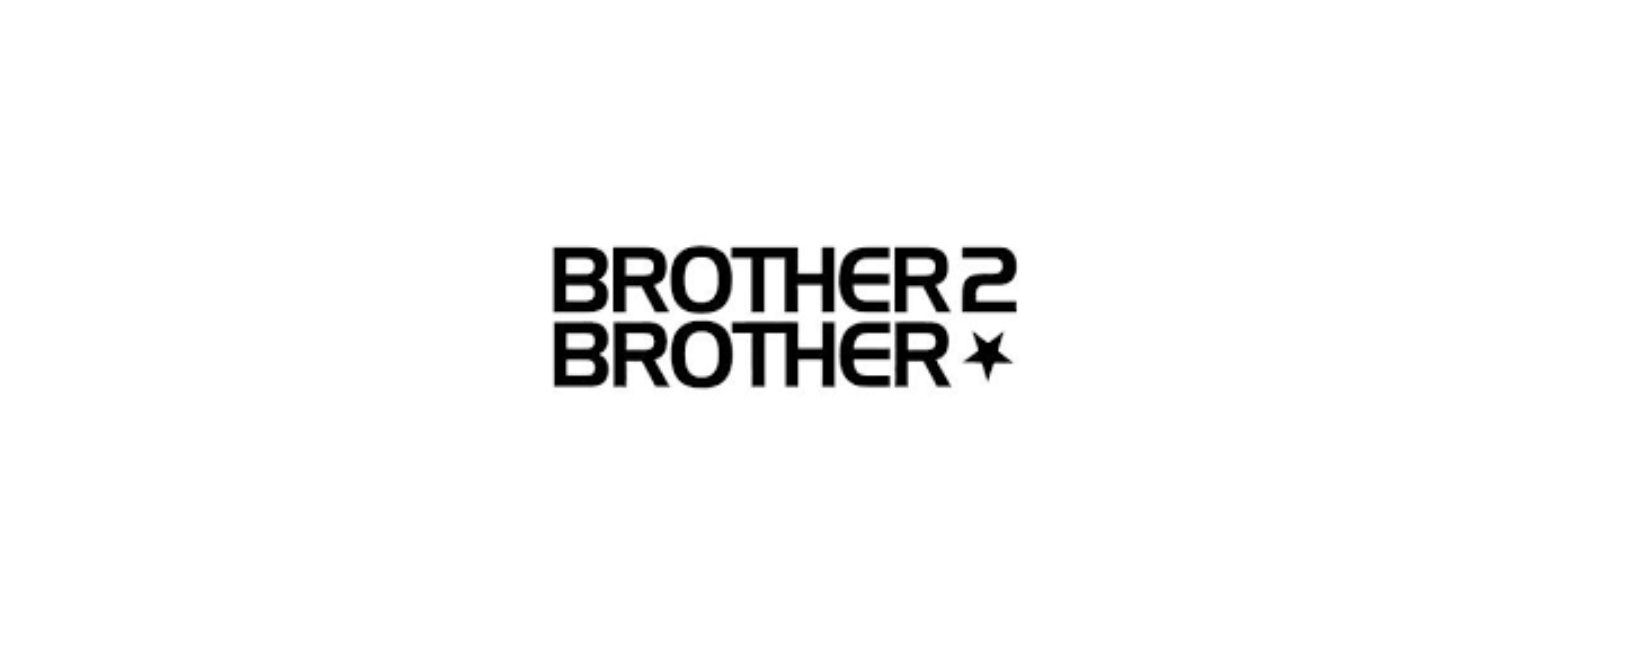 brother2brother Discount Code 2021